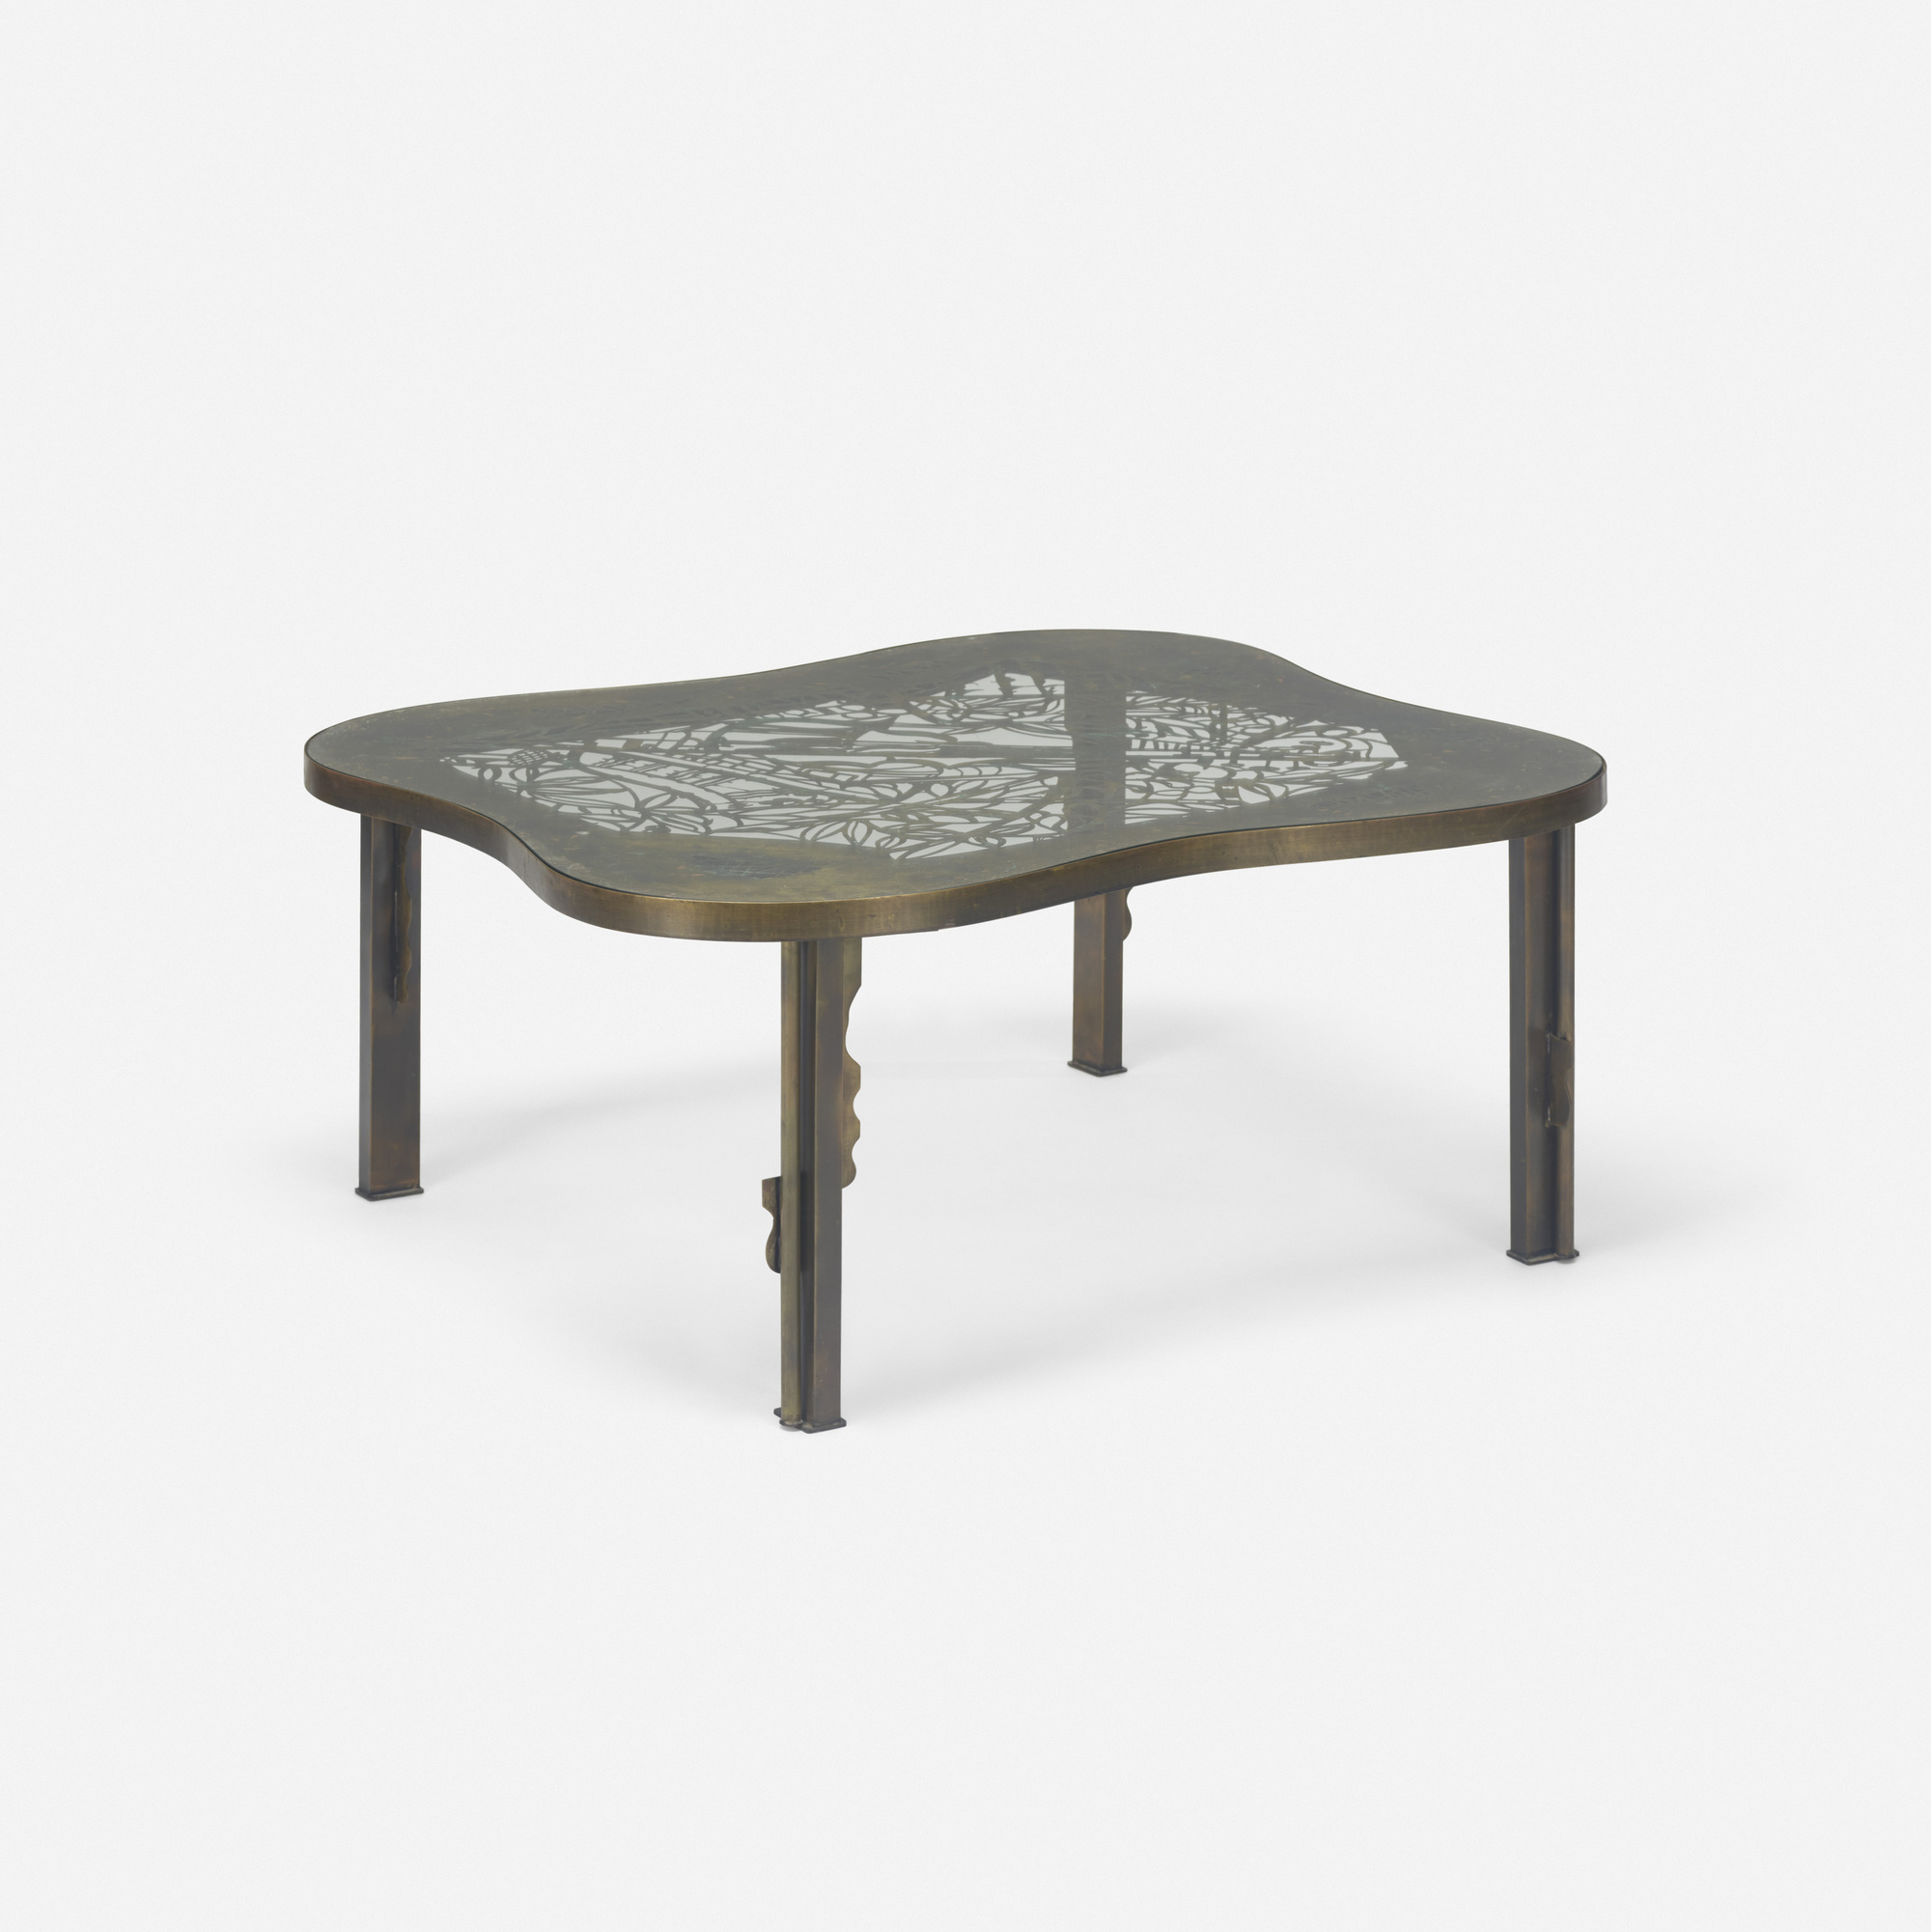 370: Philip and Kelvin LaVerne / Violau coffee table (1 of 3)